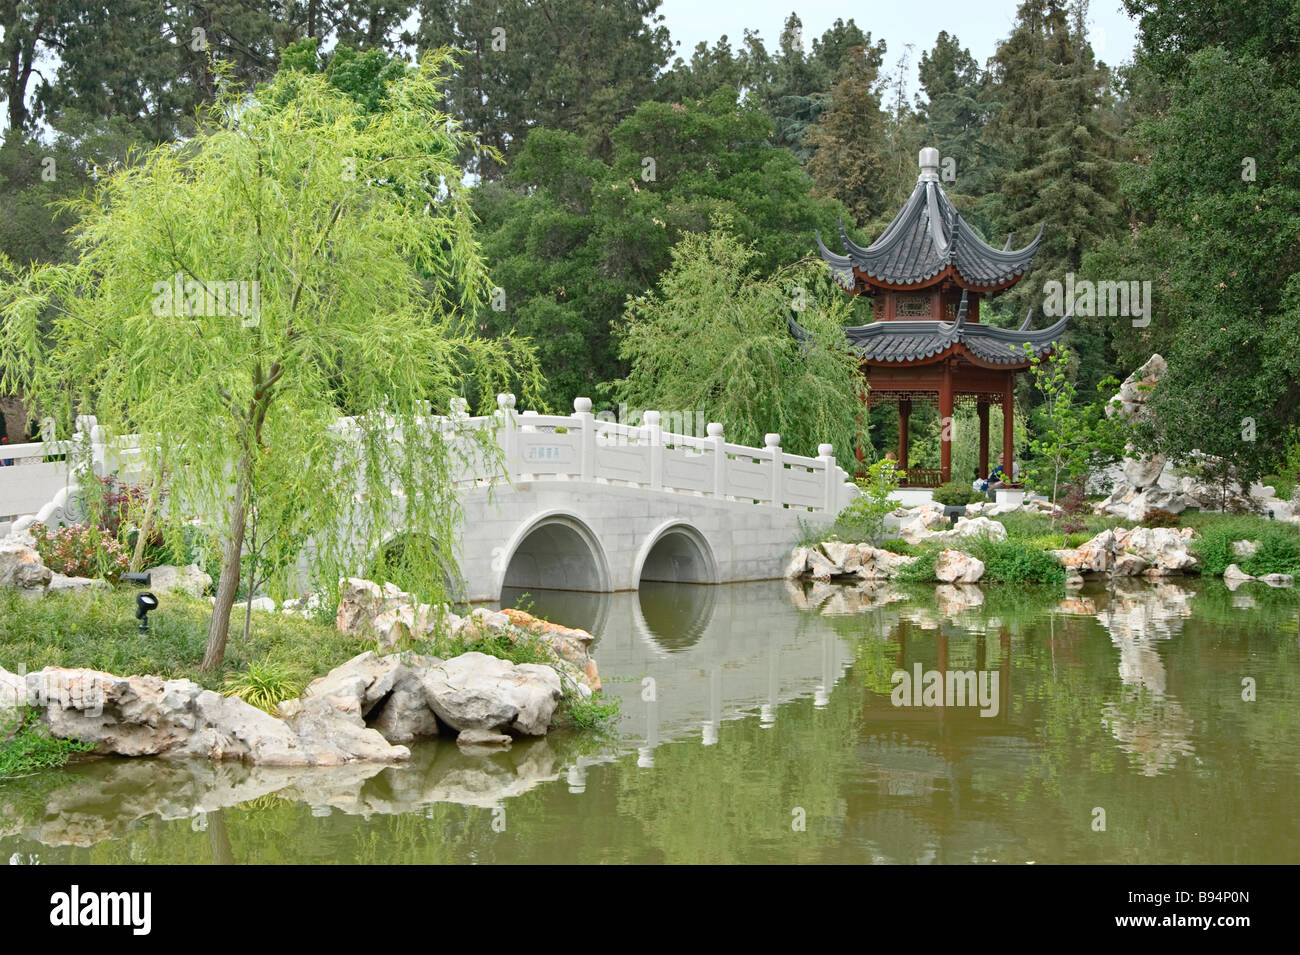 Chinese Garden Bridges Stock Photos Chinese Garden Bridges Stock